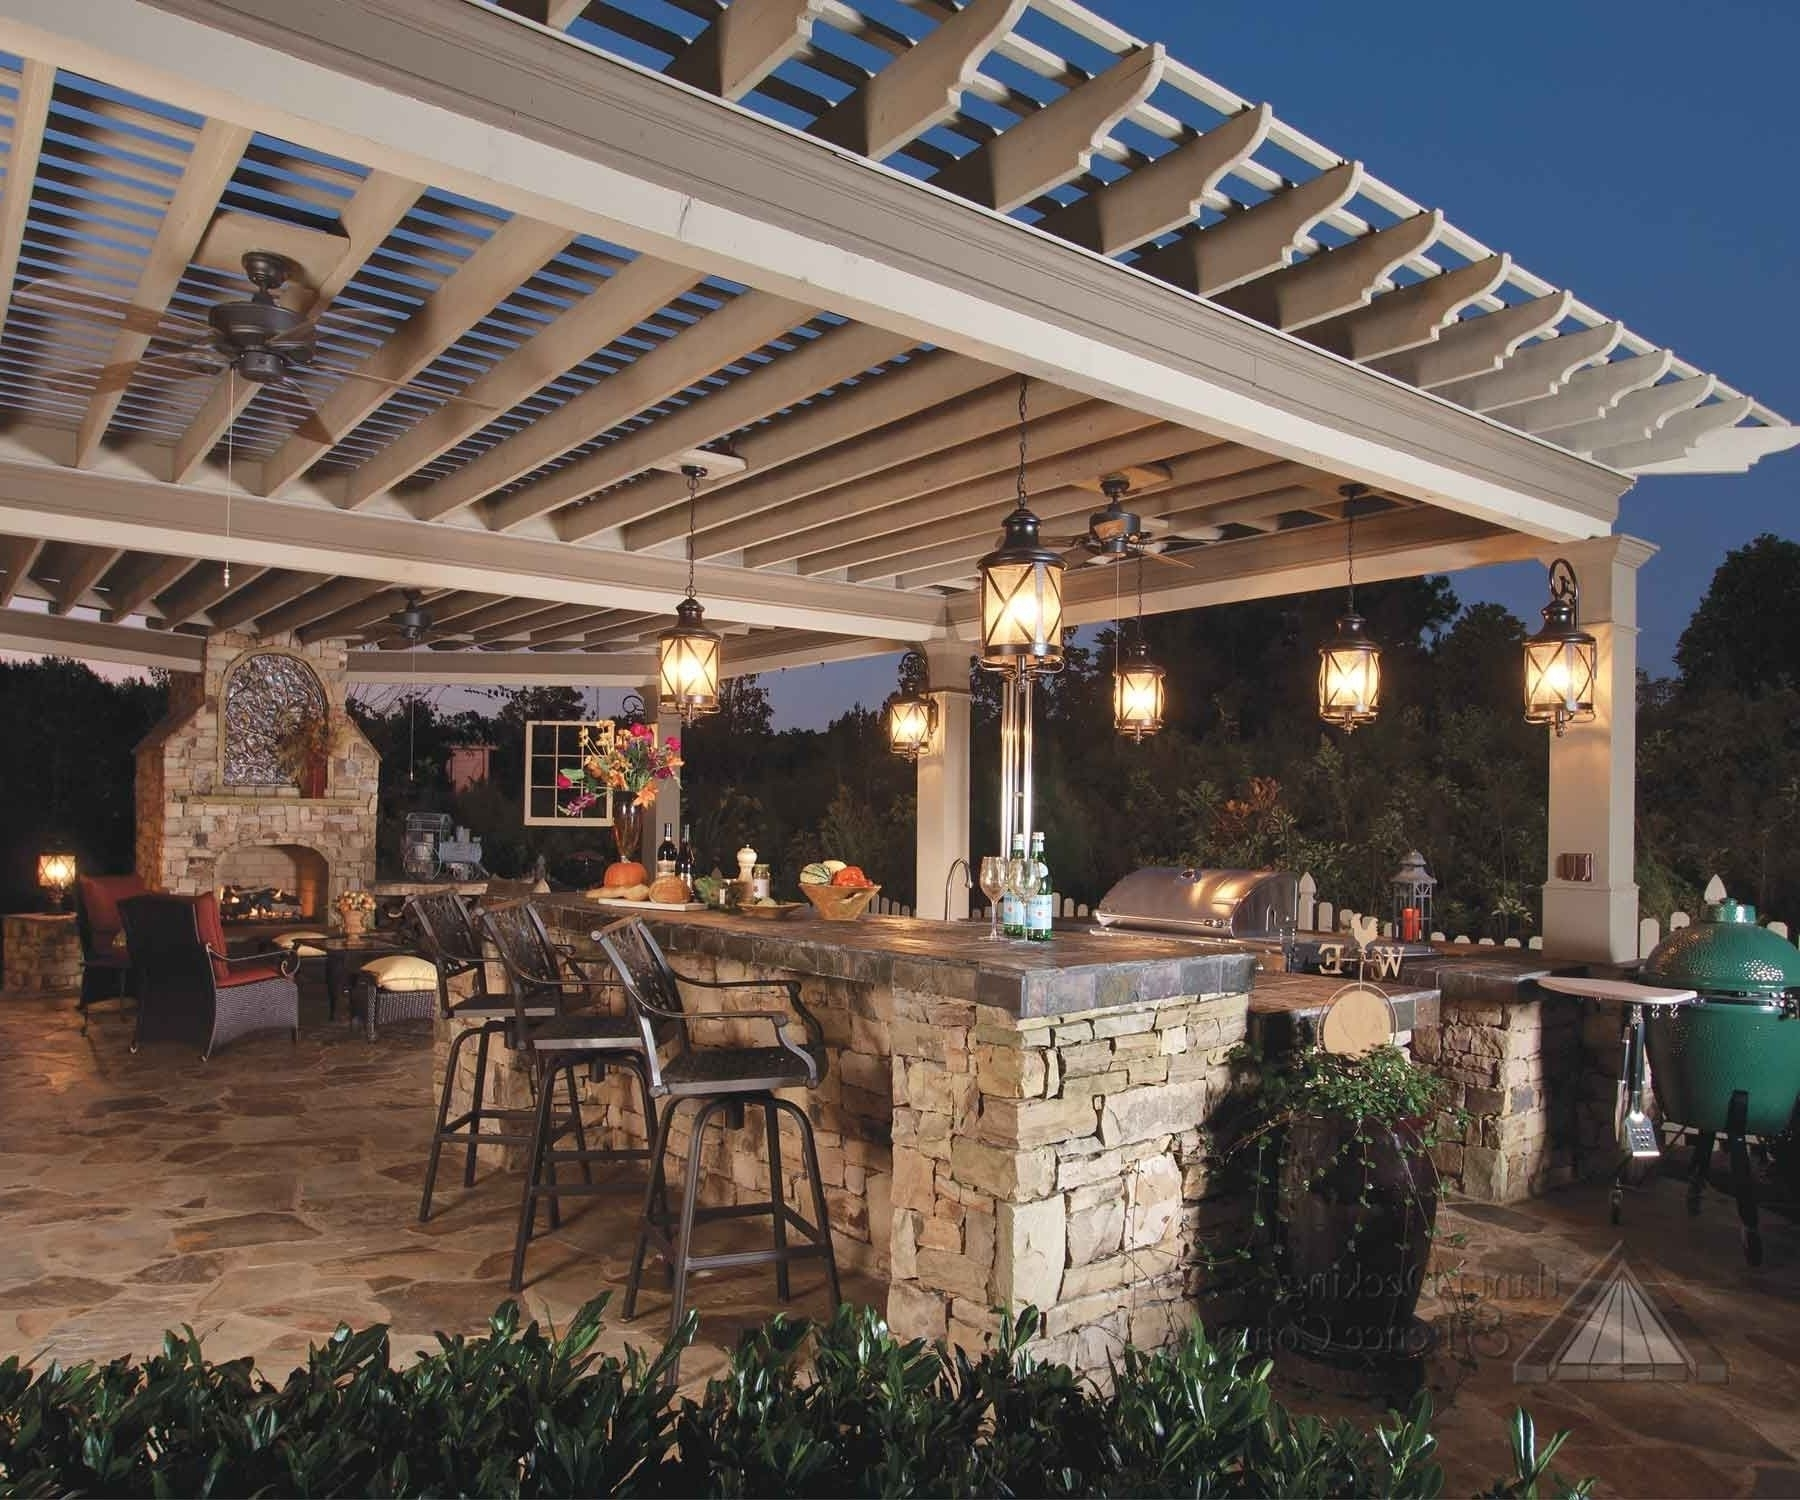 Outdoor Lighting Hanging Fixtures — Bistrodre Porch And Landscape Ideas With Regard To Outdoor Hanging Lights For Porch (View 13 of 15)